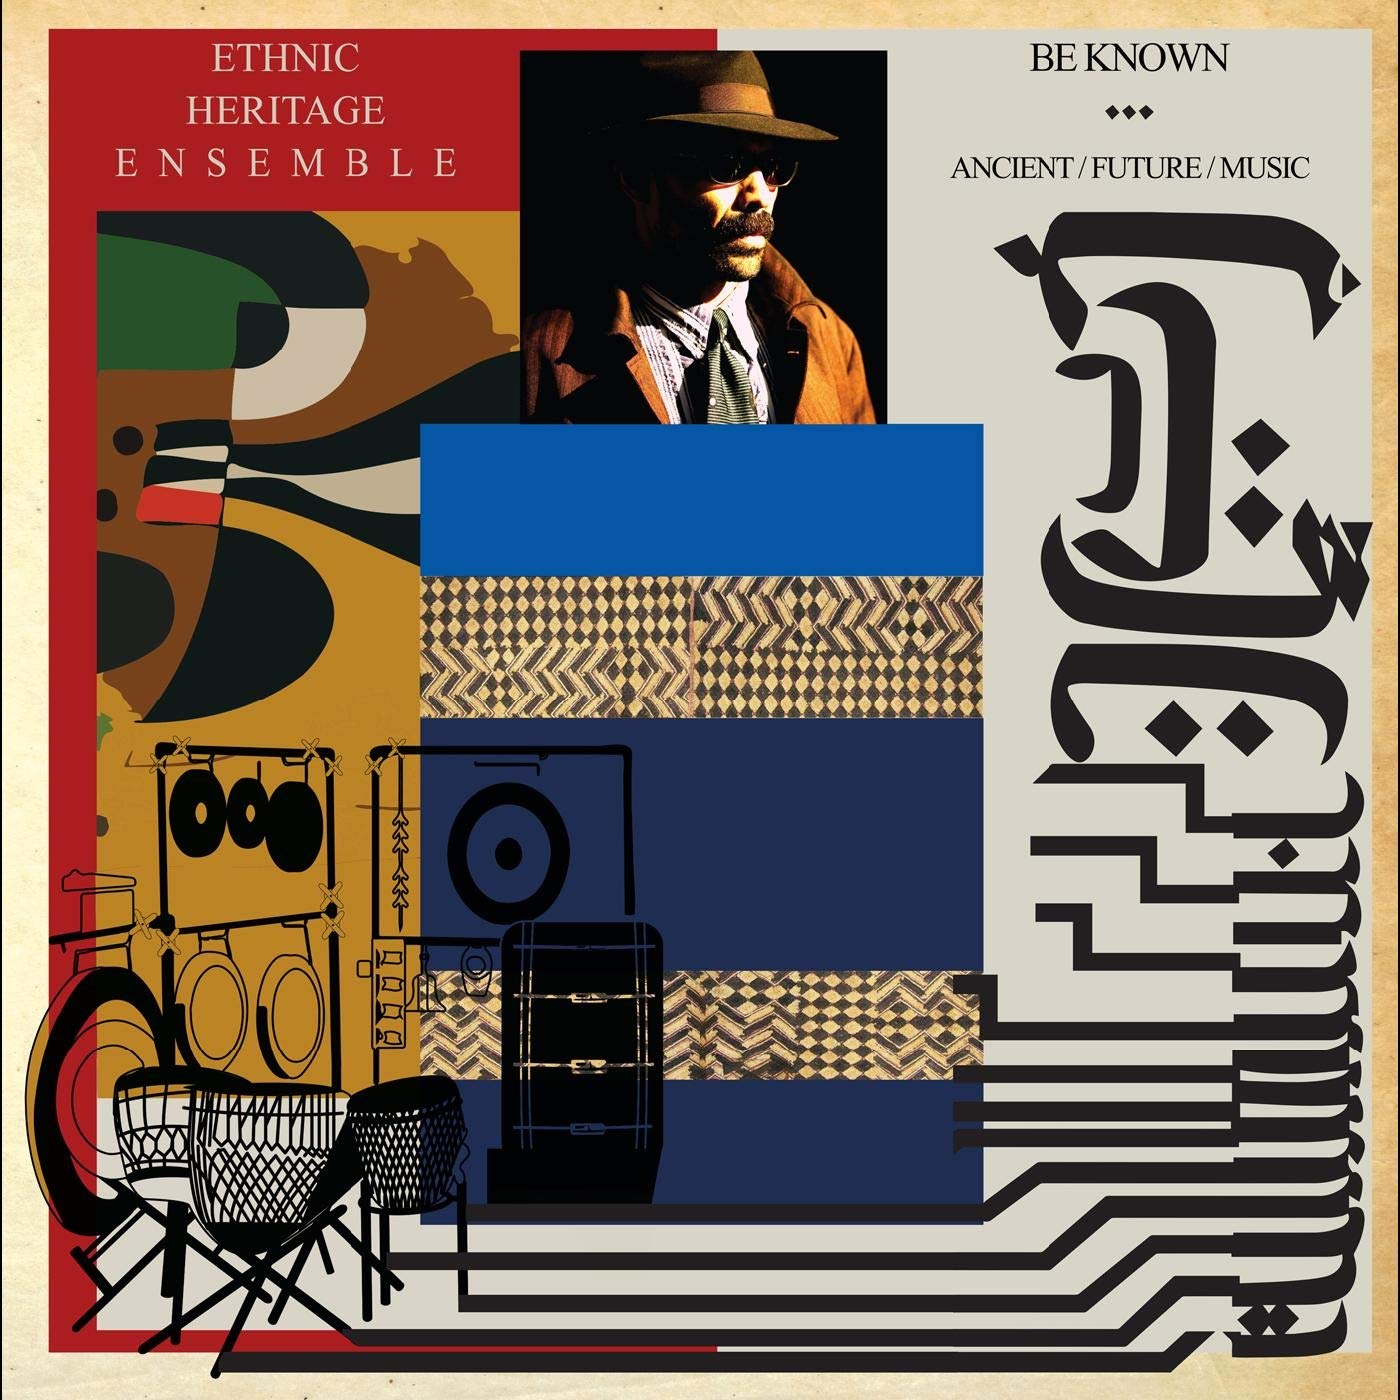 ETHNIC HERITAGE ENSEMBLE - Be Known - Ancient/Future/Music cover